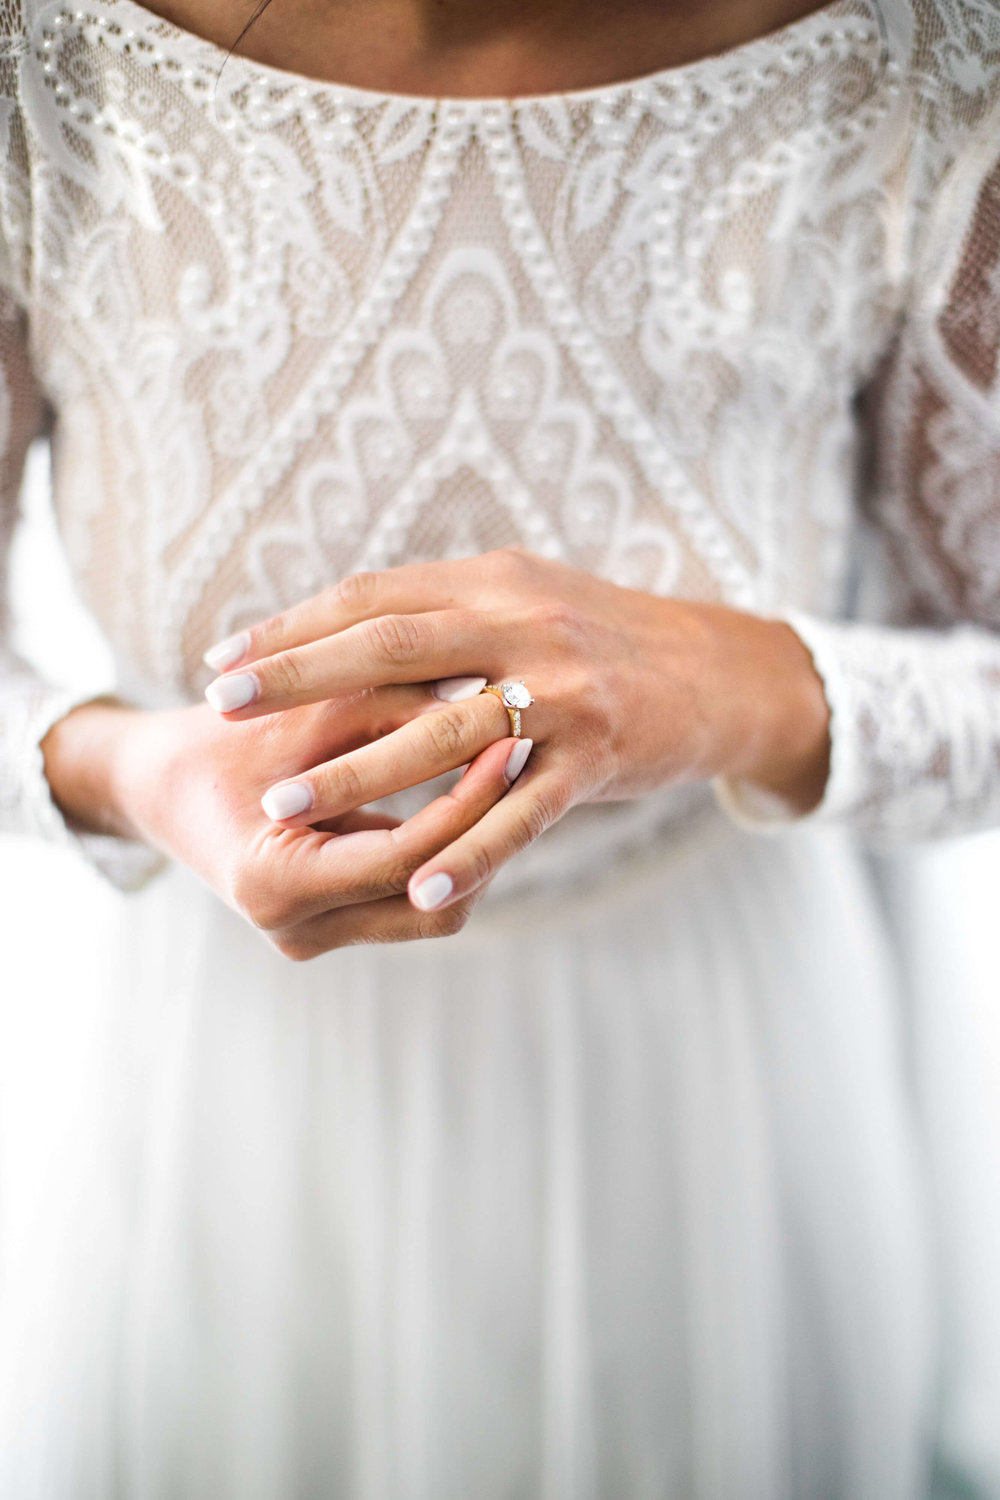 lace work long sleeve top | solitaire ring with band | Minnesota wedding photographer Studio KH wedding dress details | wedding blog | Sixpence Events 70 Ways to Photograph Your Wedding Dress.jpg